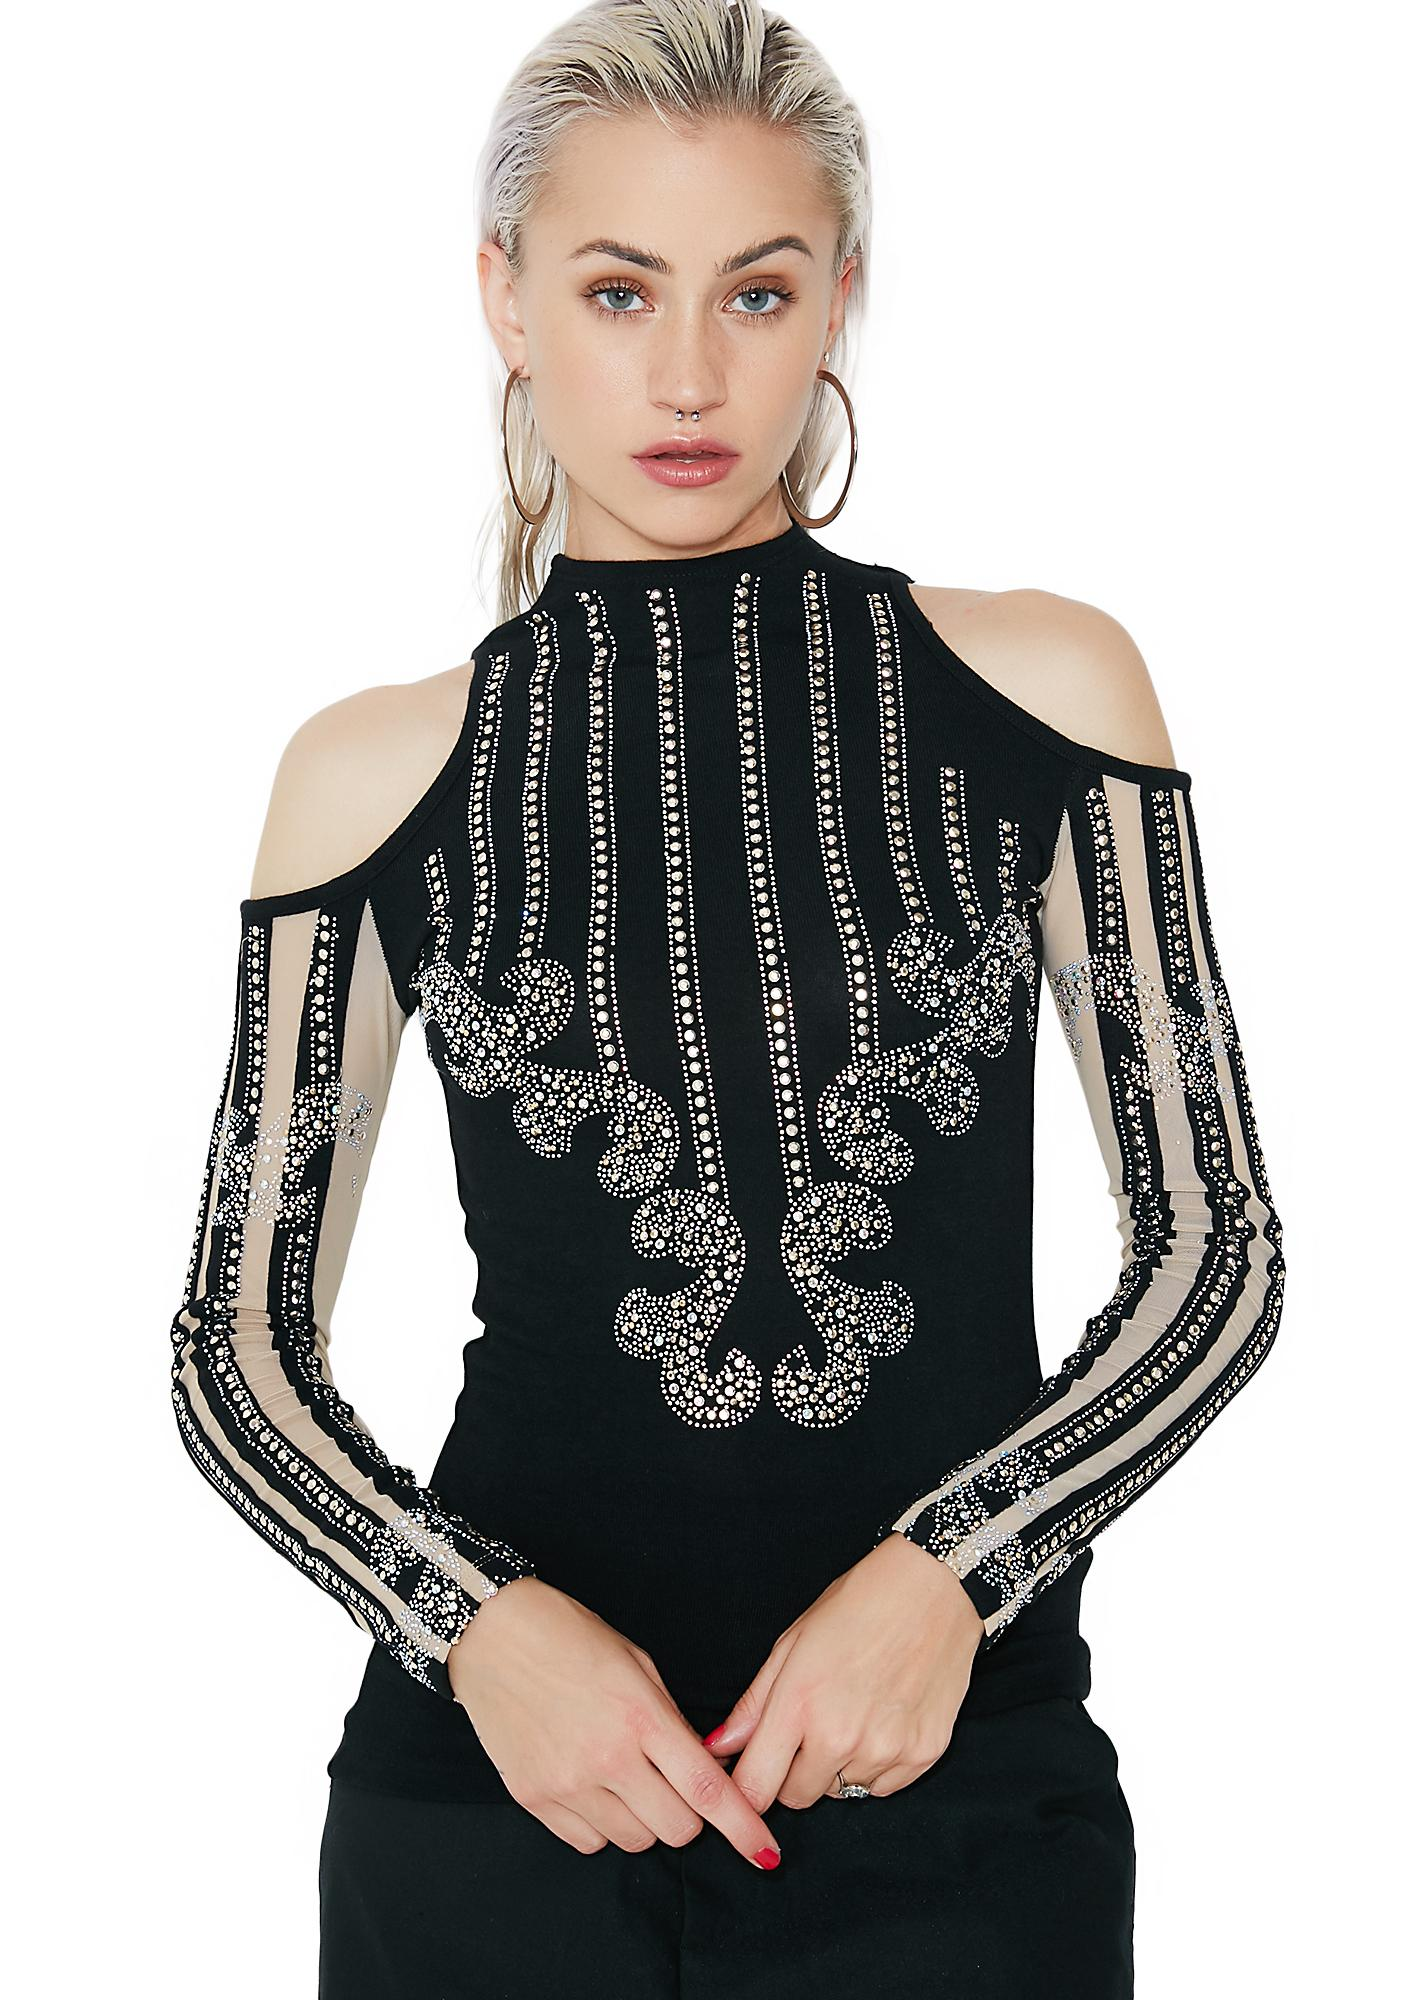 Kiki Riki High Maintenance Embellished Top